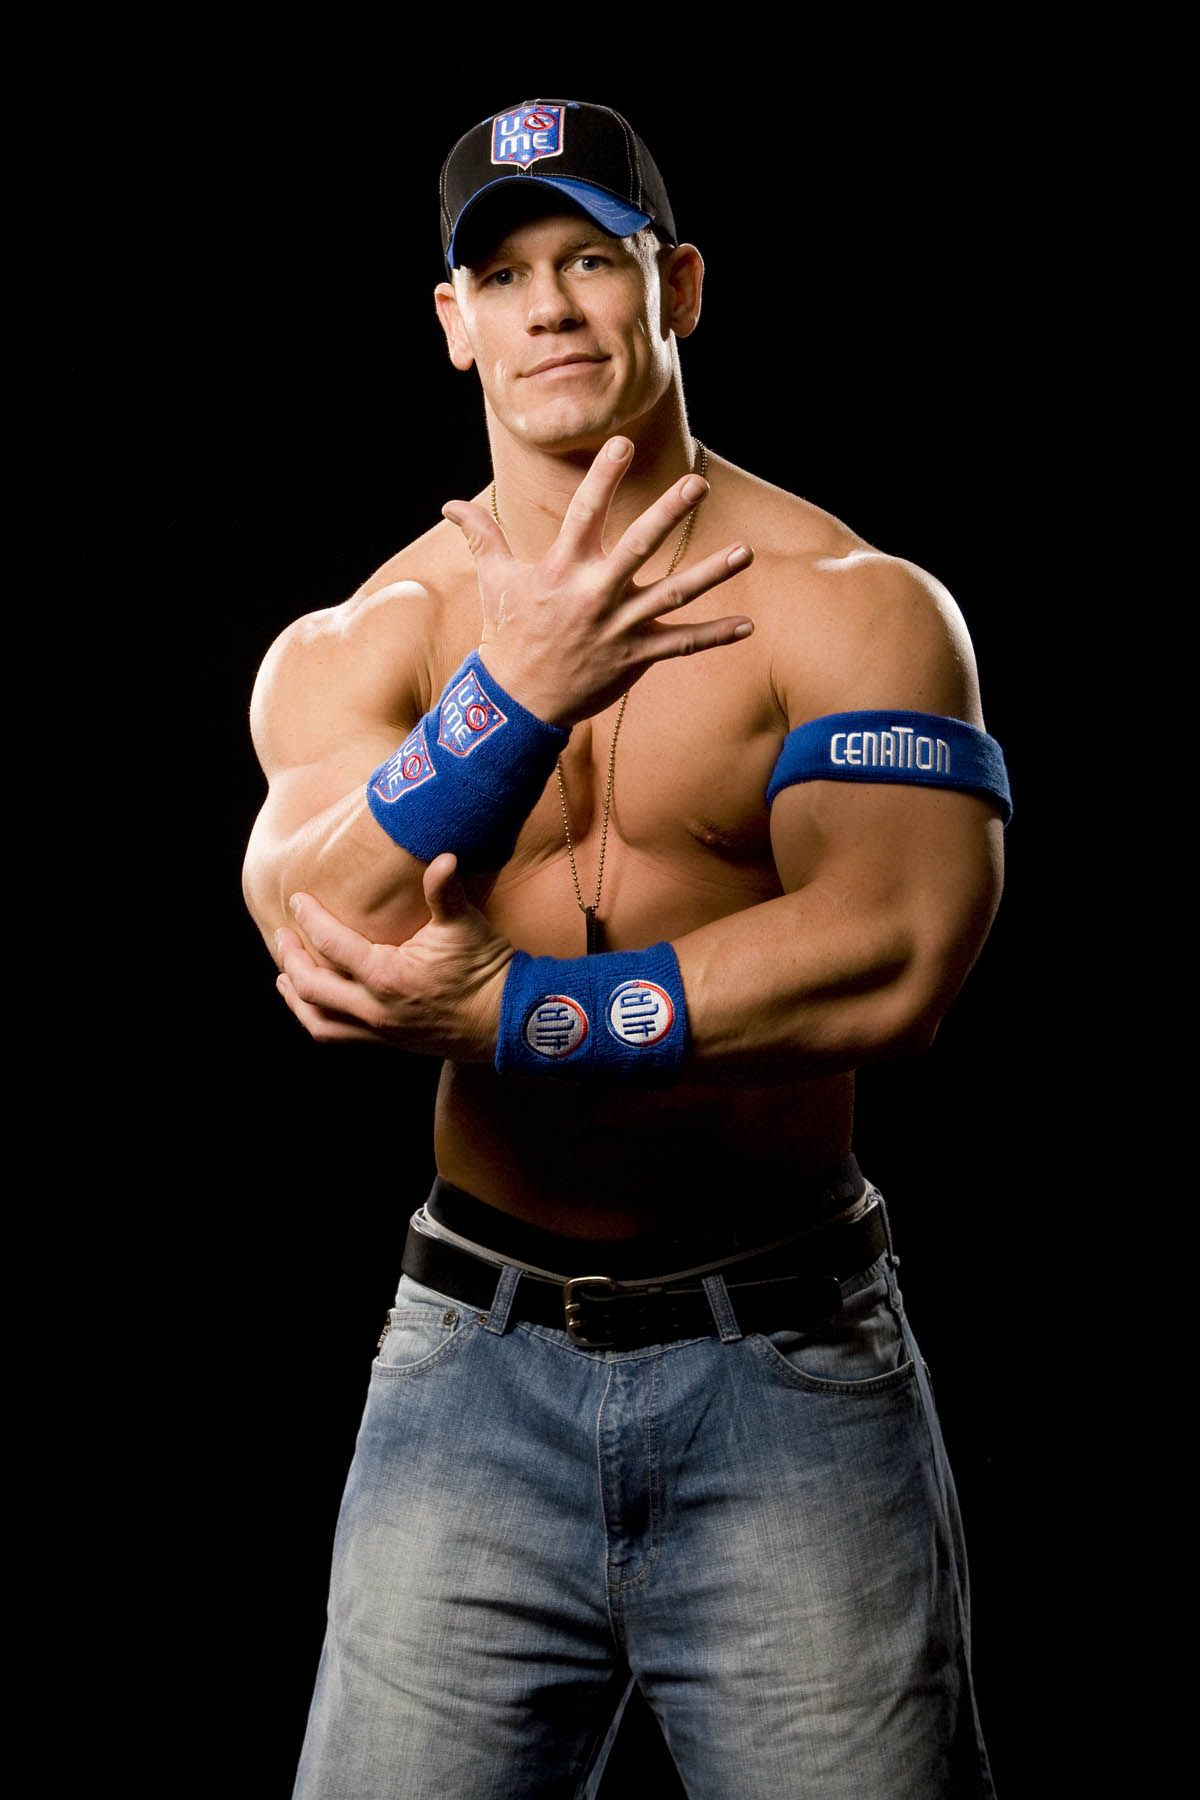 John cena - Cena I Have A Thing For Muscles